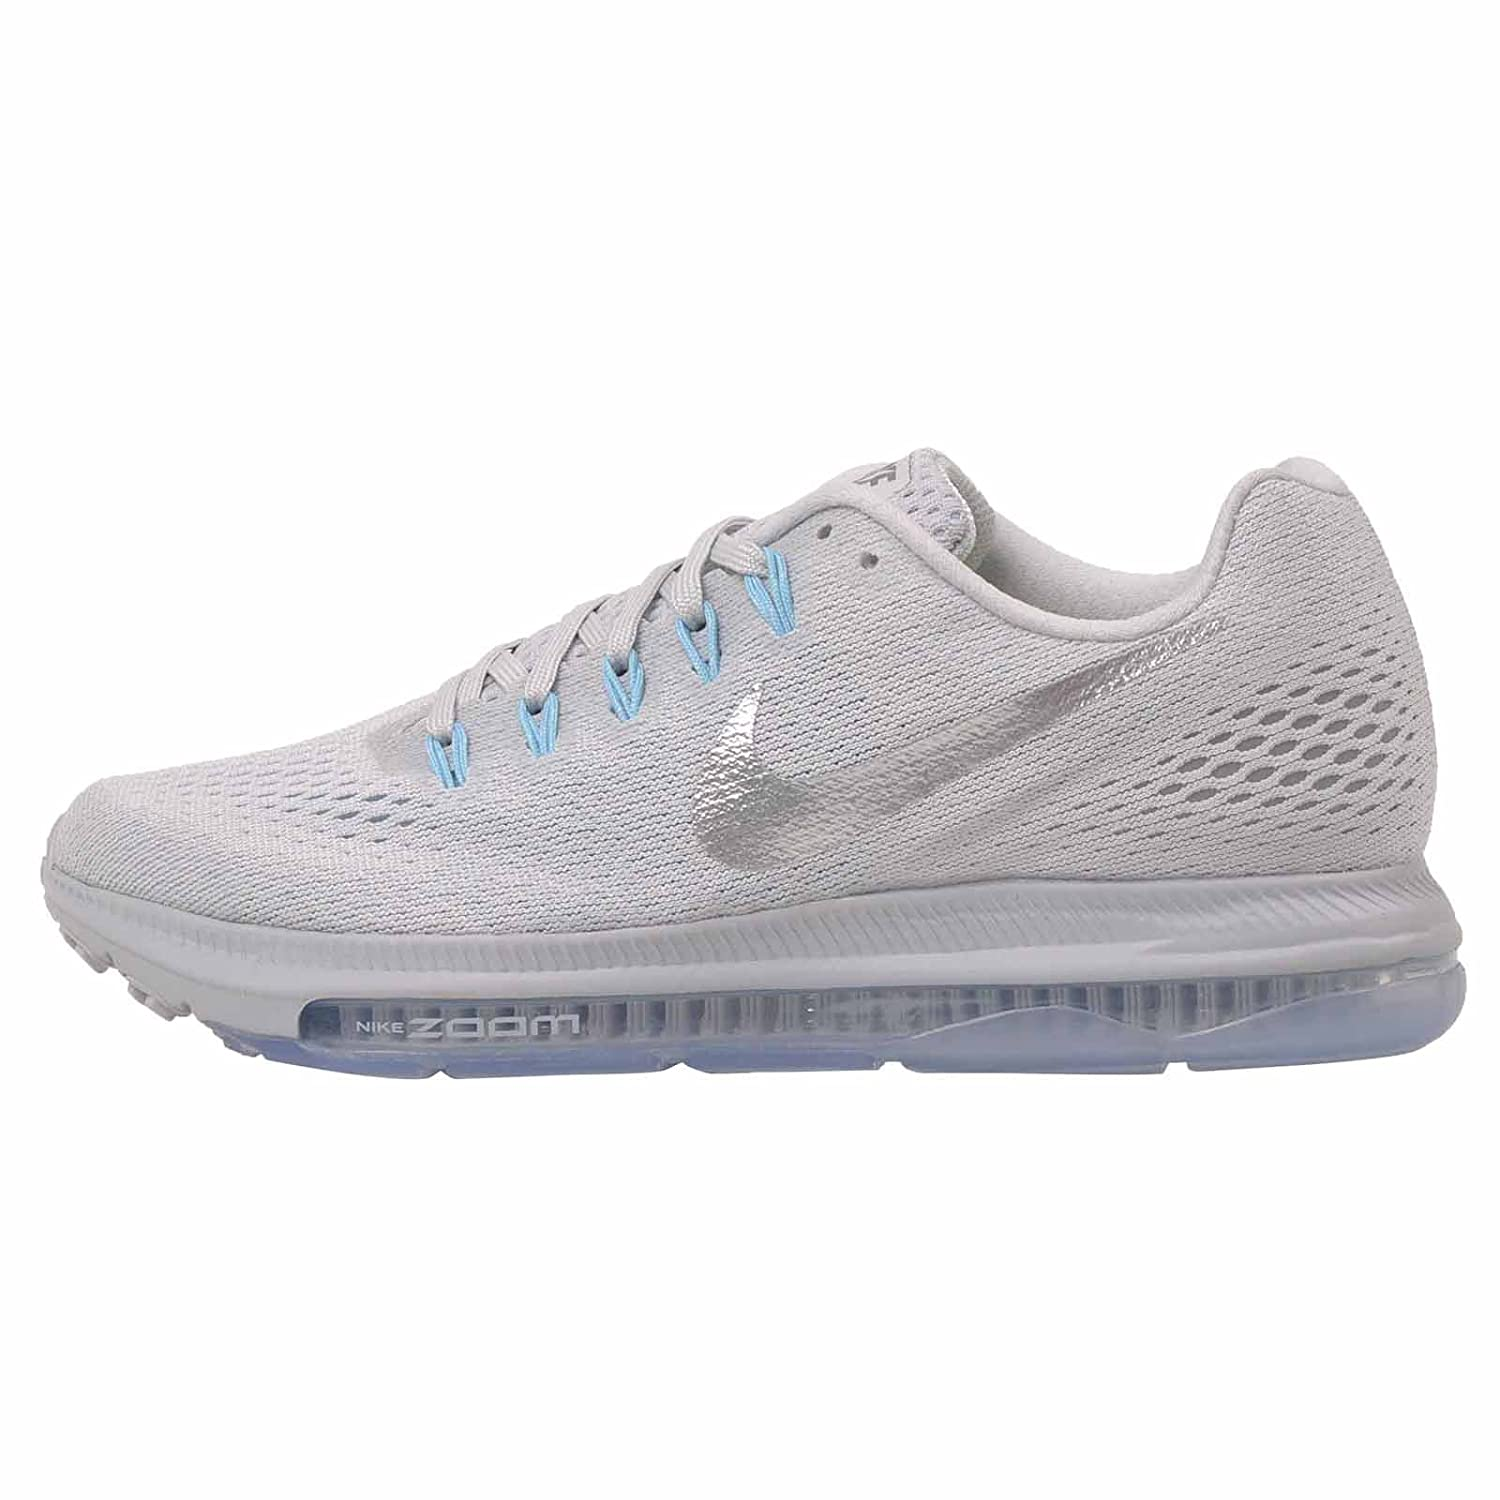 Zapatillas de running Low Nike Chrome Zoom Zoom All Out Low running para running 3ba8b0